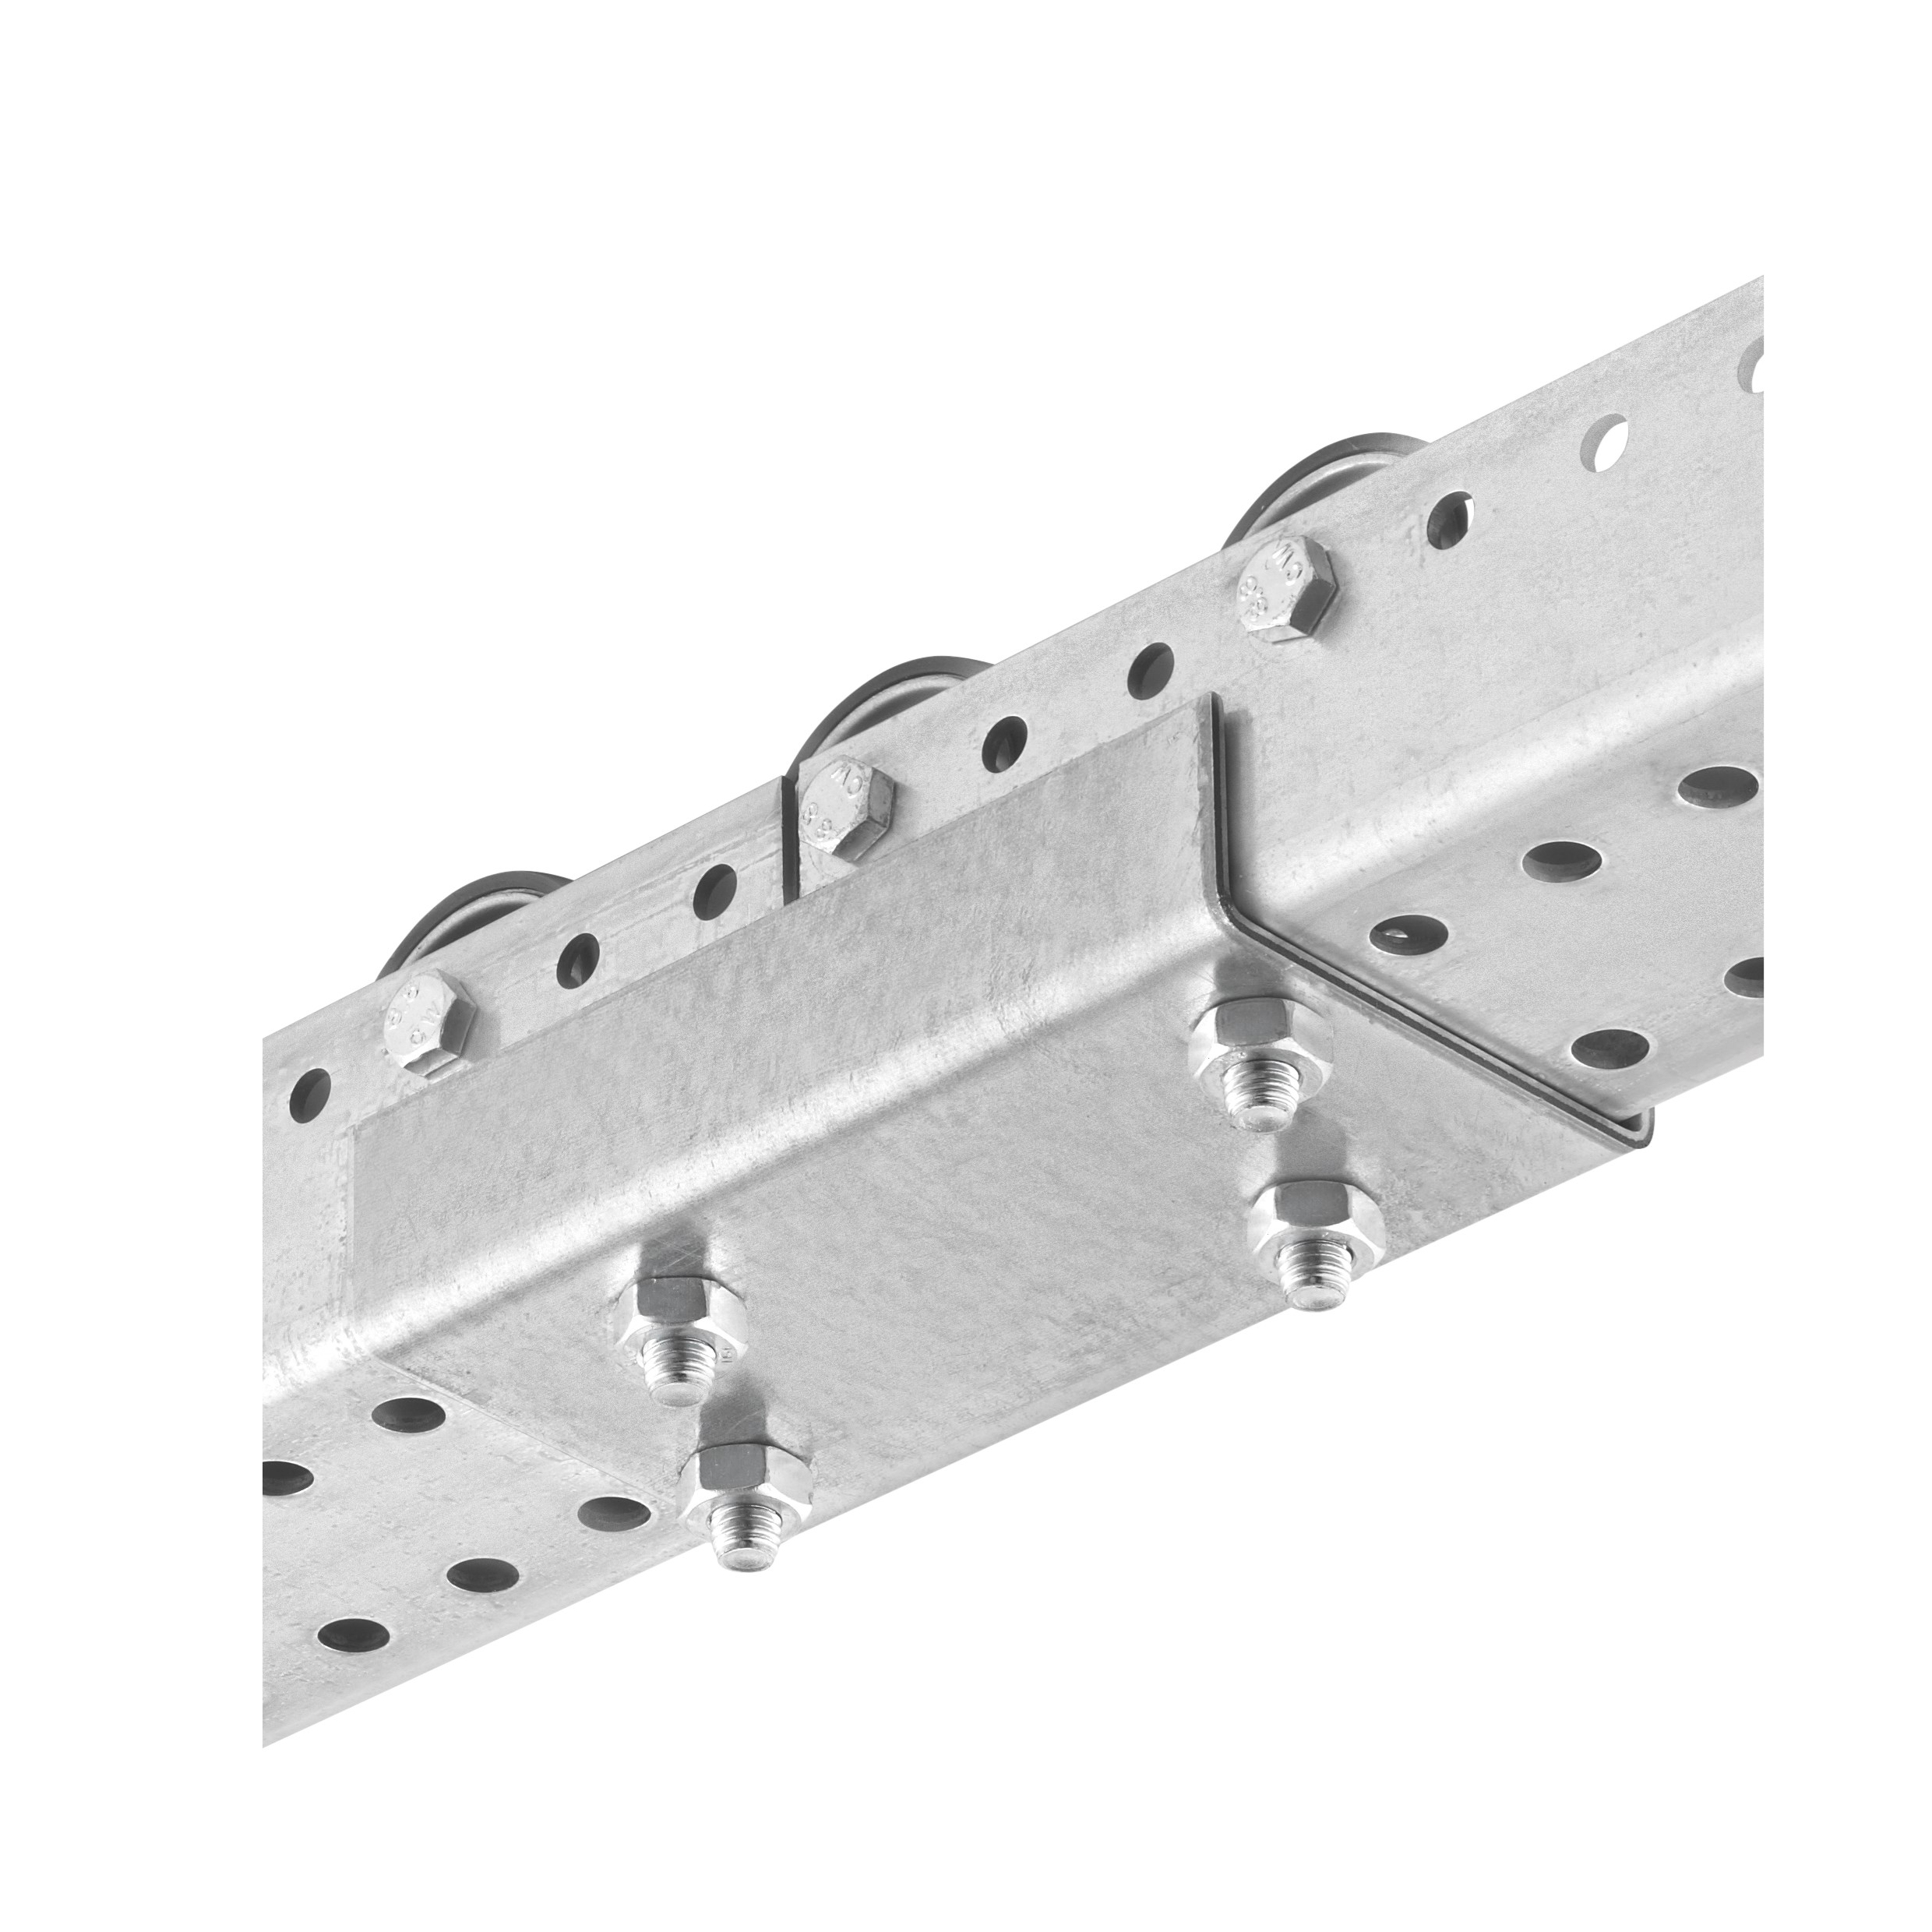 U-connector with screws for pallet roller rail